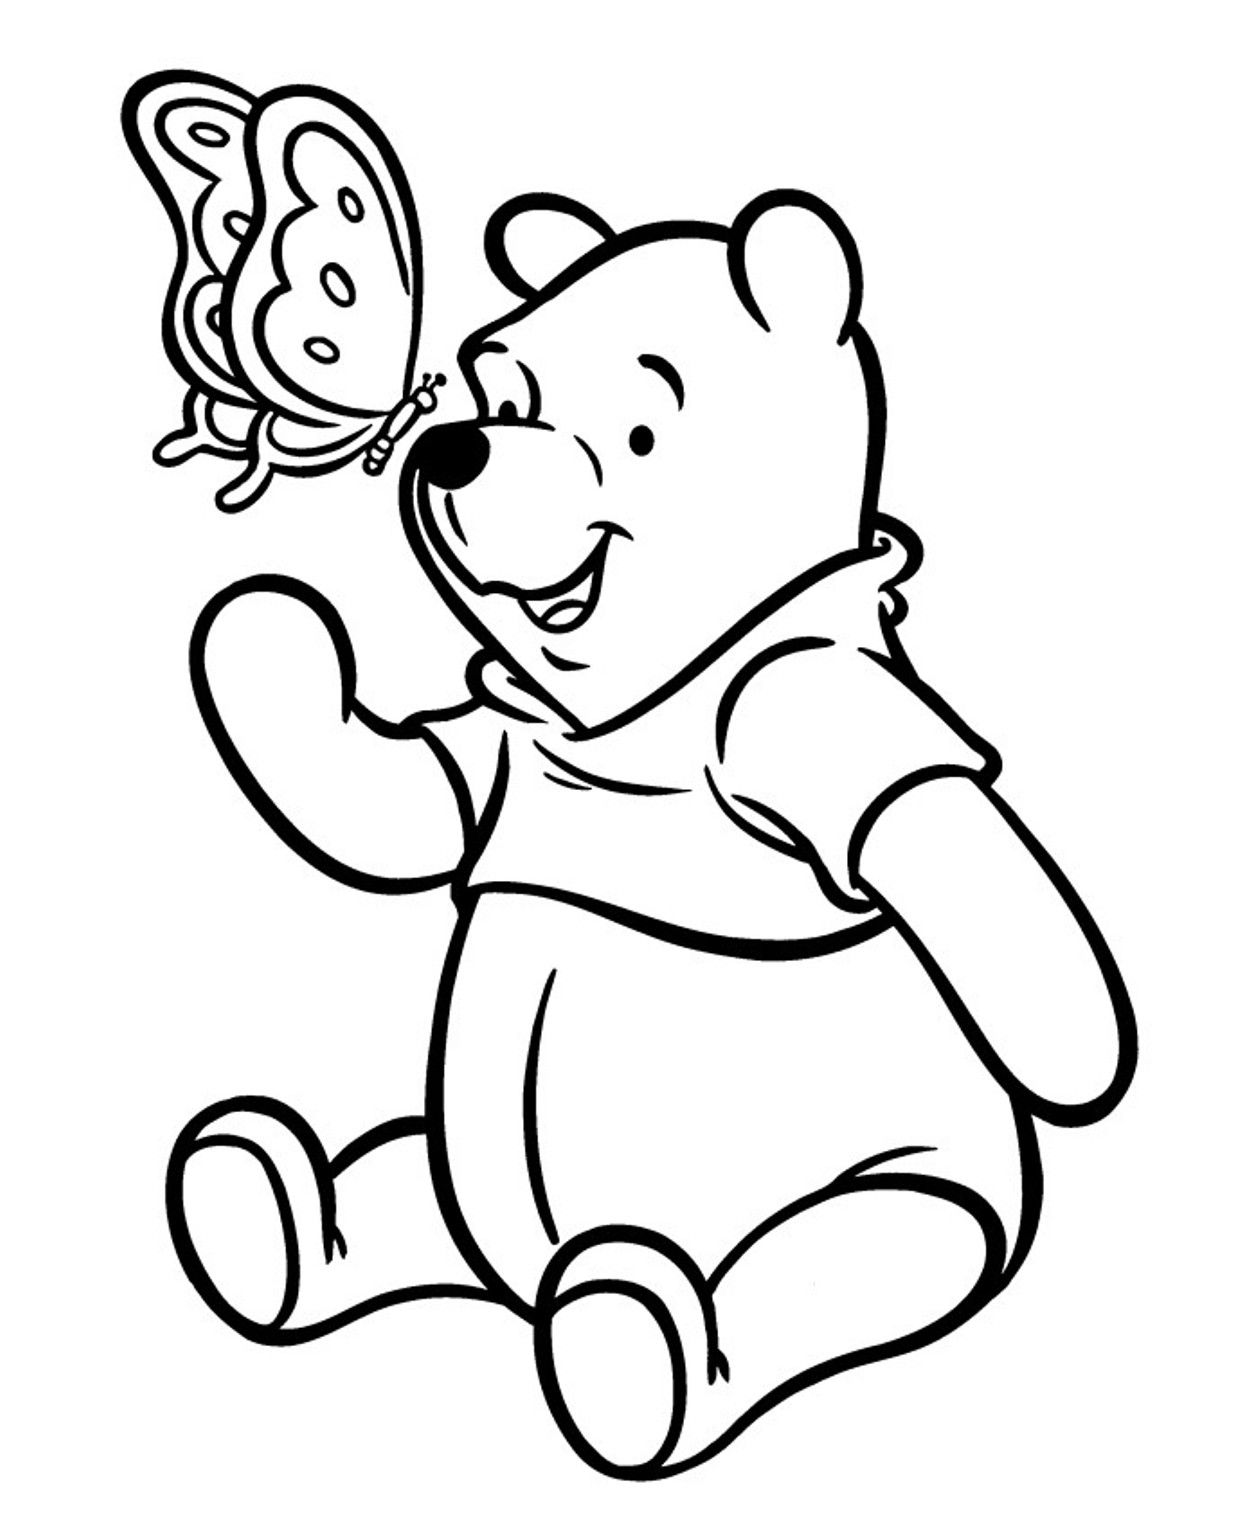 Pooh bear coloring pictures